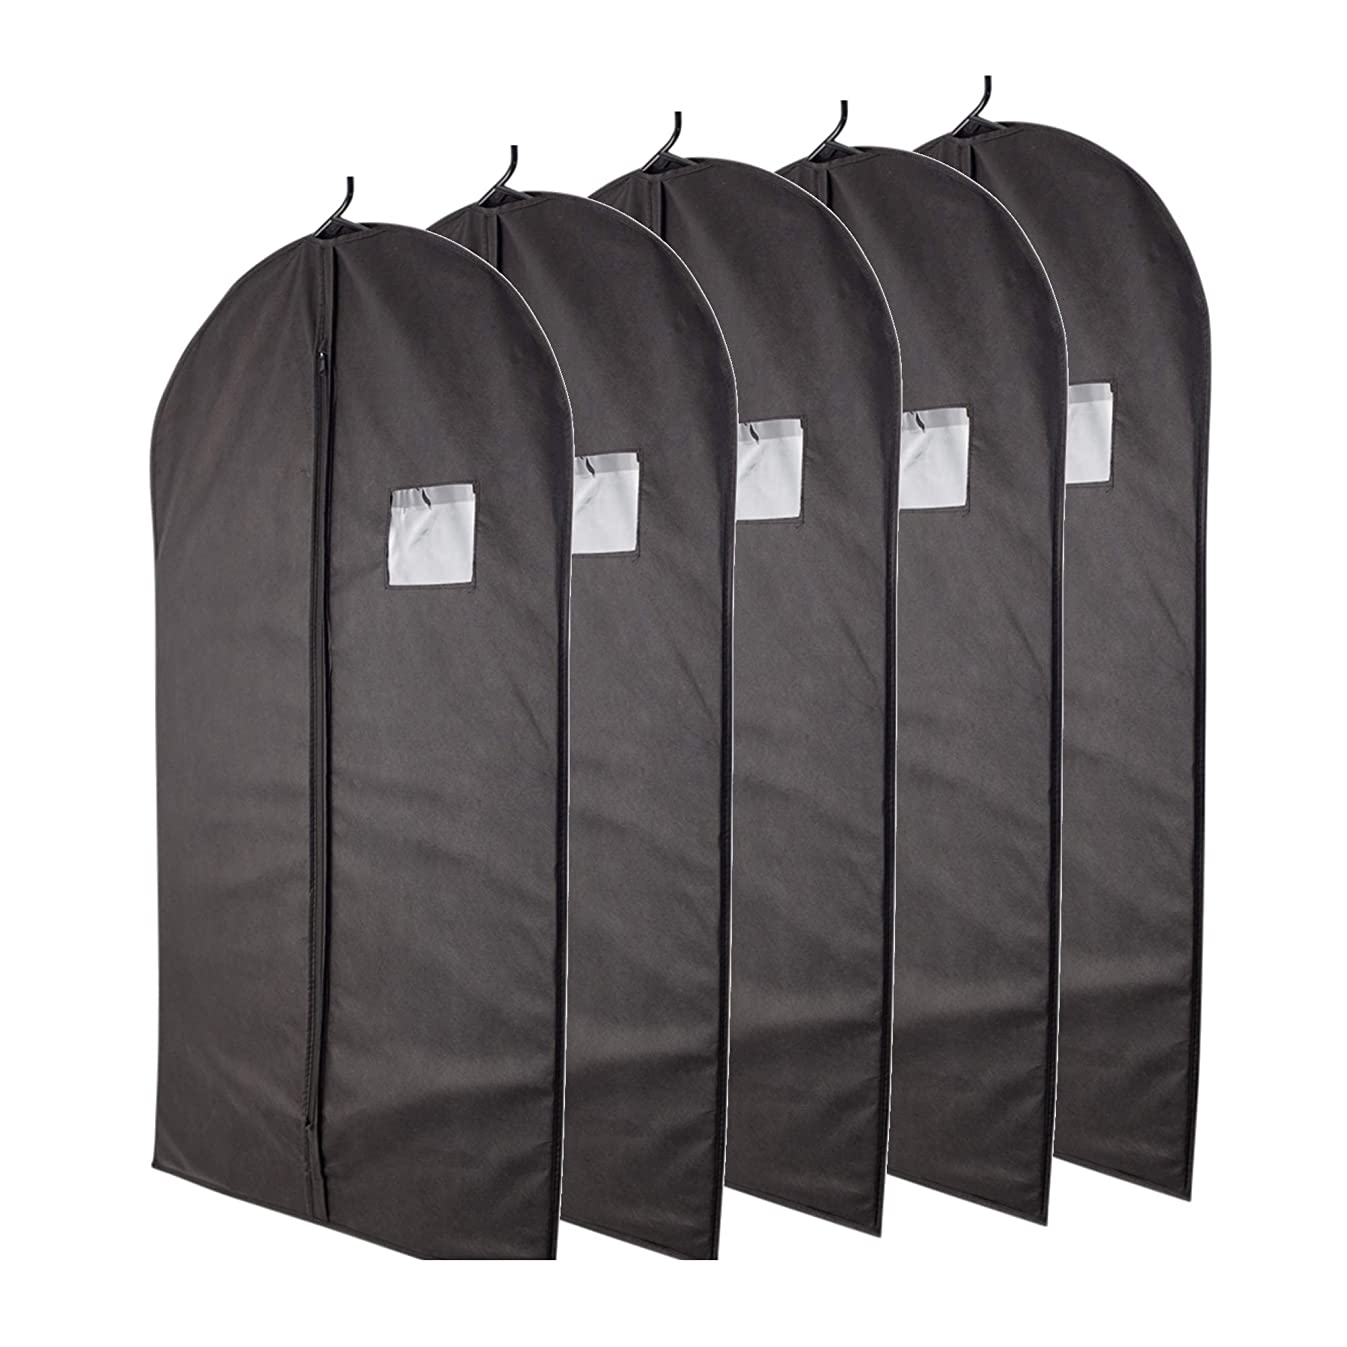 Plixio Garment Bags Suit Bag for Travel and Clothing Storage of Dresses, Dress Shirts, Coats— Includes Zipper and Transparent Window (Black- 5 Pack: 40